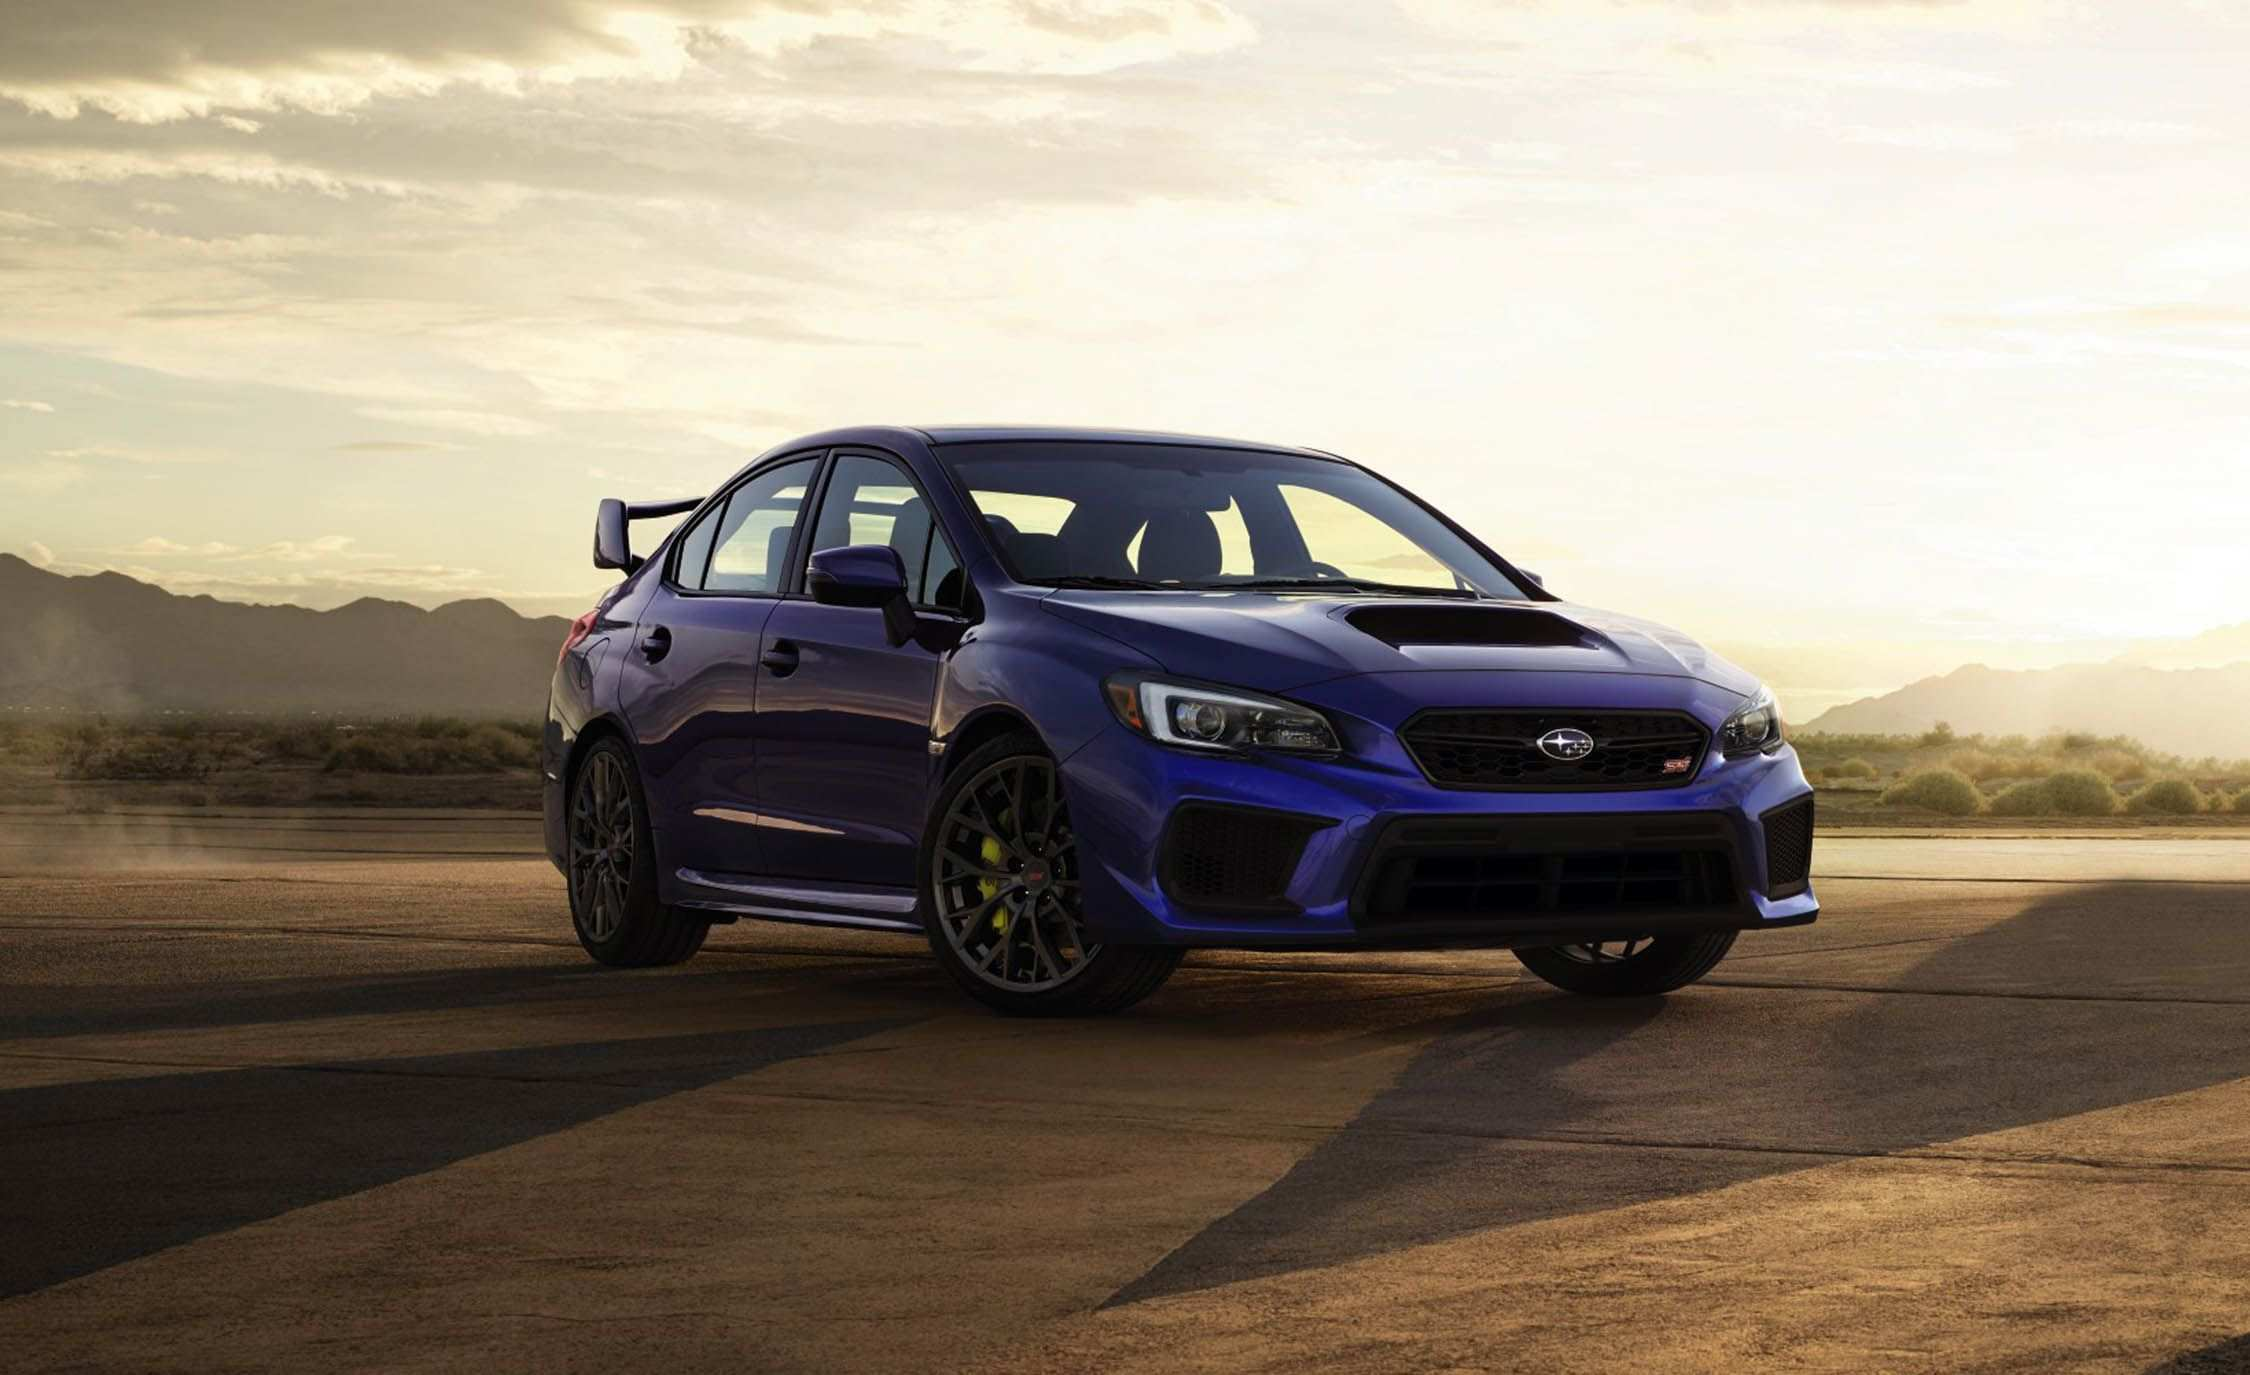 82 Great The Subaru Sti Wagon 2019 Specs And Review Overview by The Subaru Sti Wagon 2019 Specs And Review